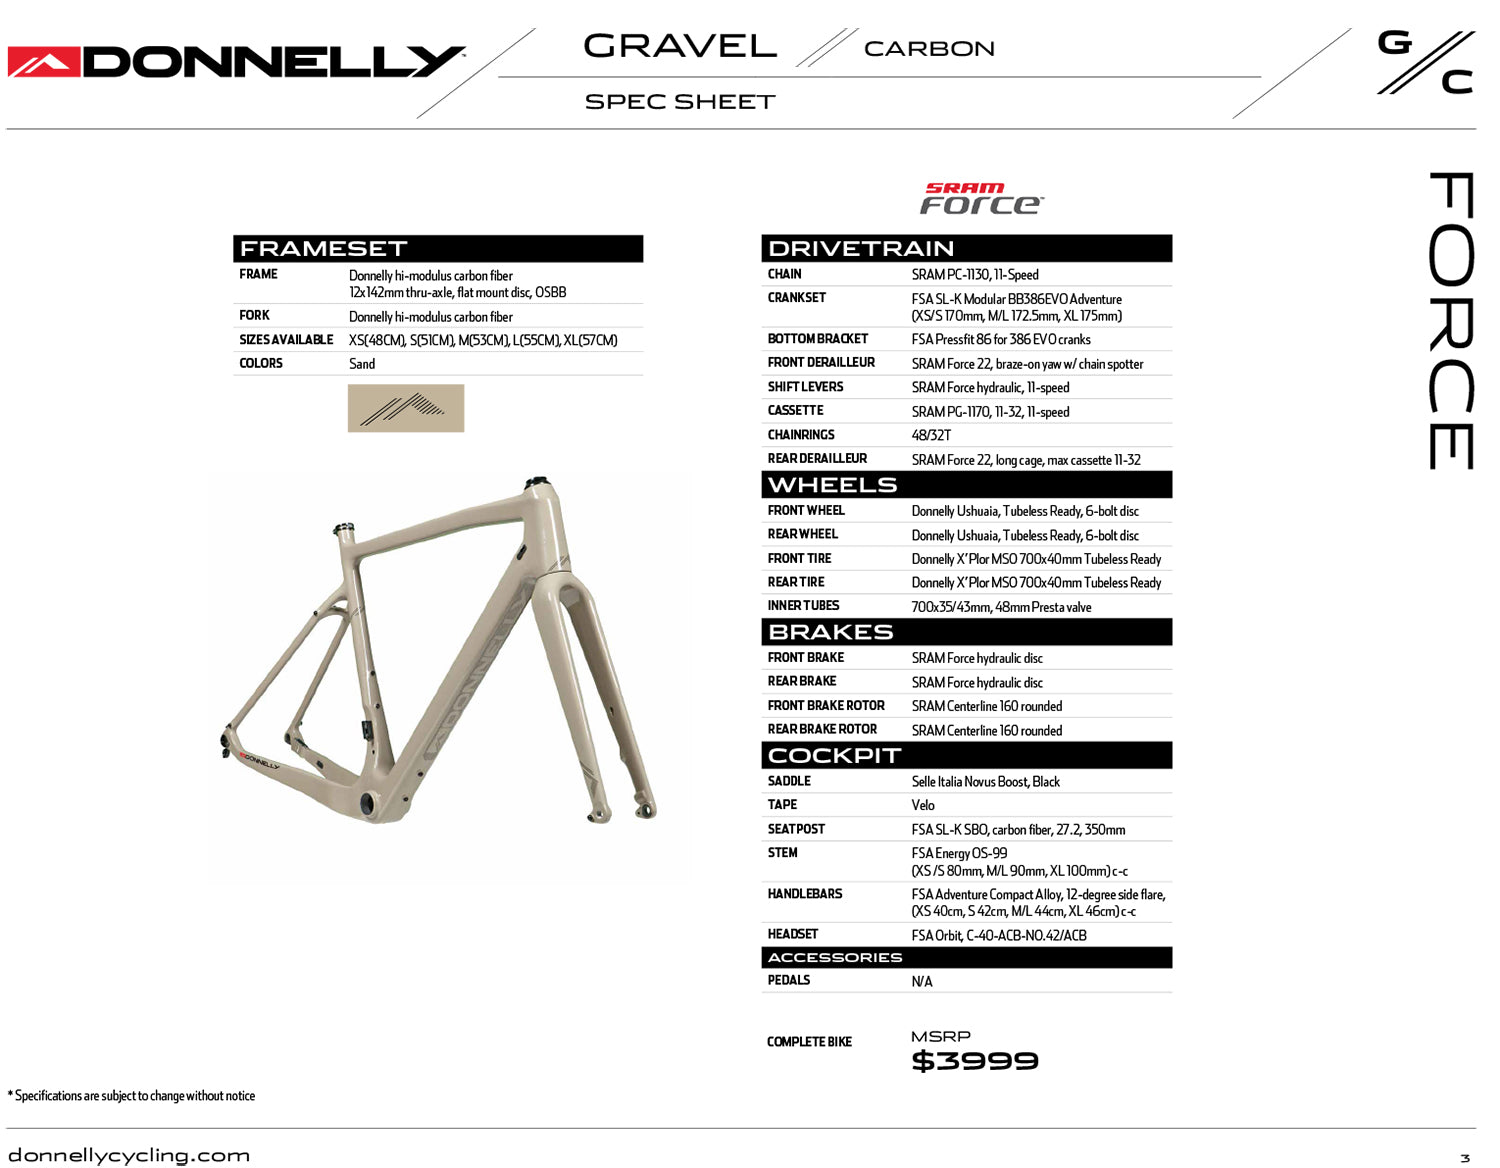 Donnelly G//C Gravel Bike - Sram Force